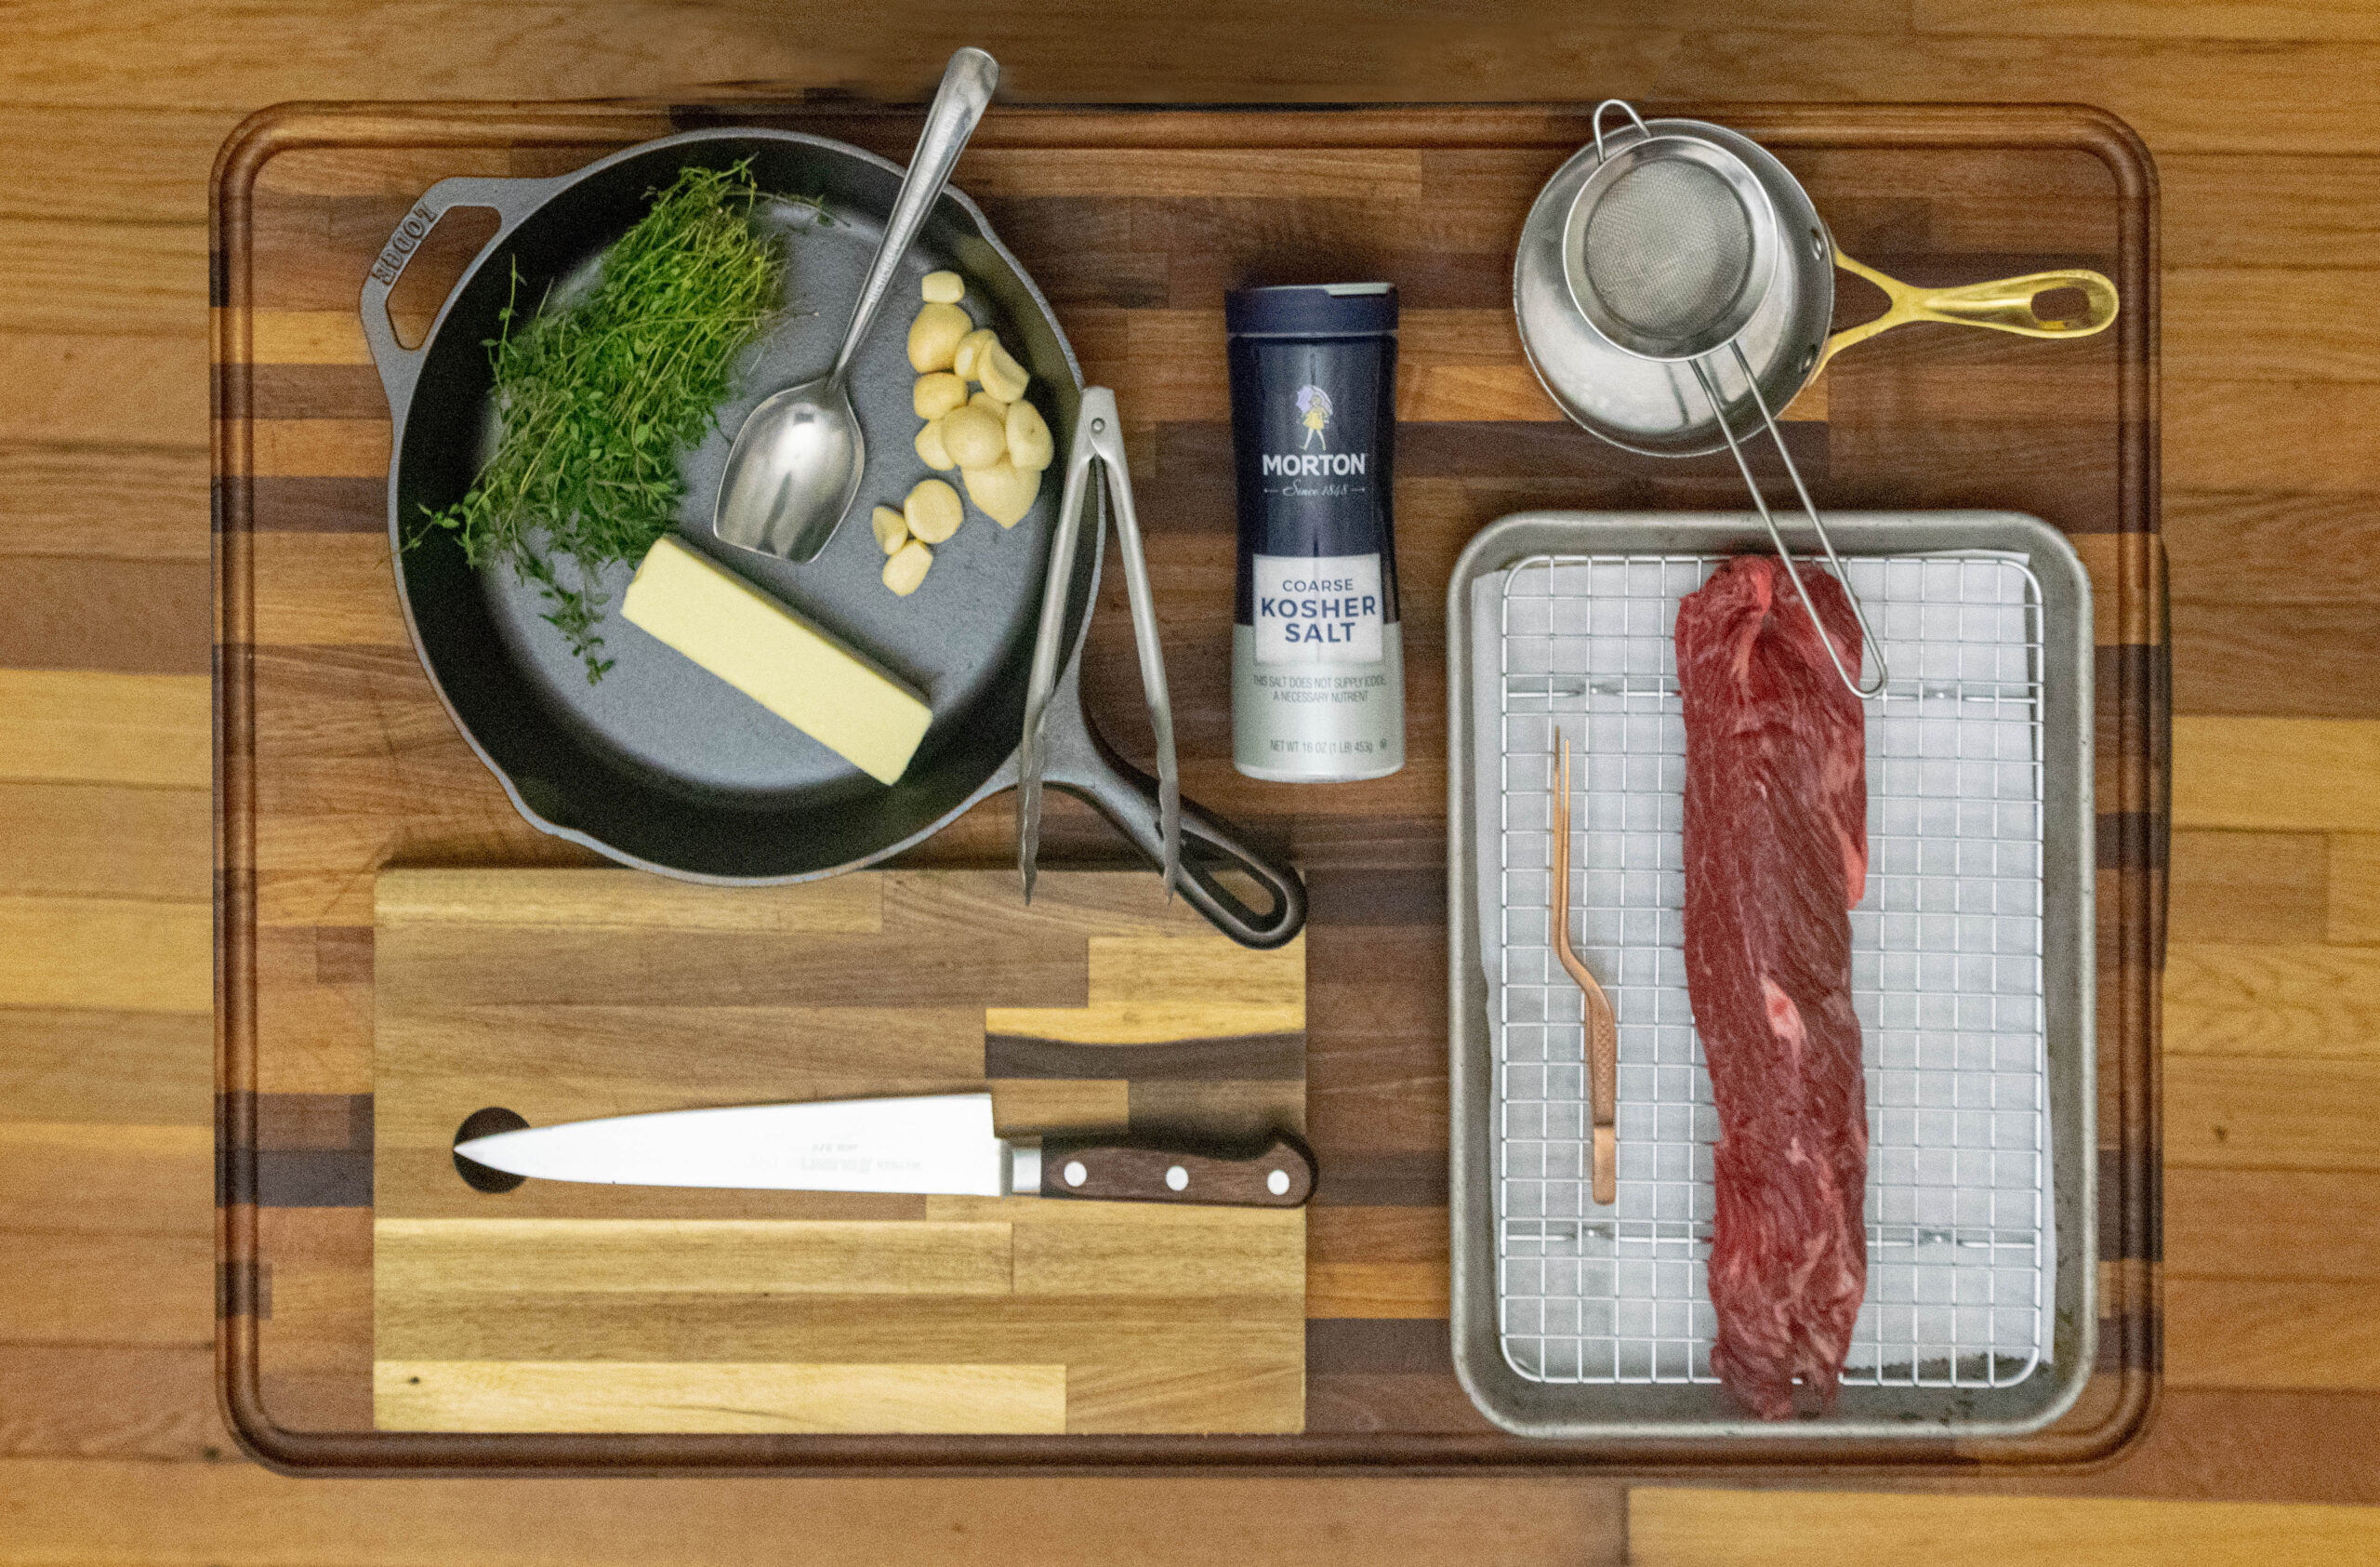 Personal Chef Cooking Secrets: Mouthwatering Steak